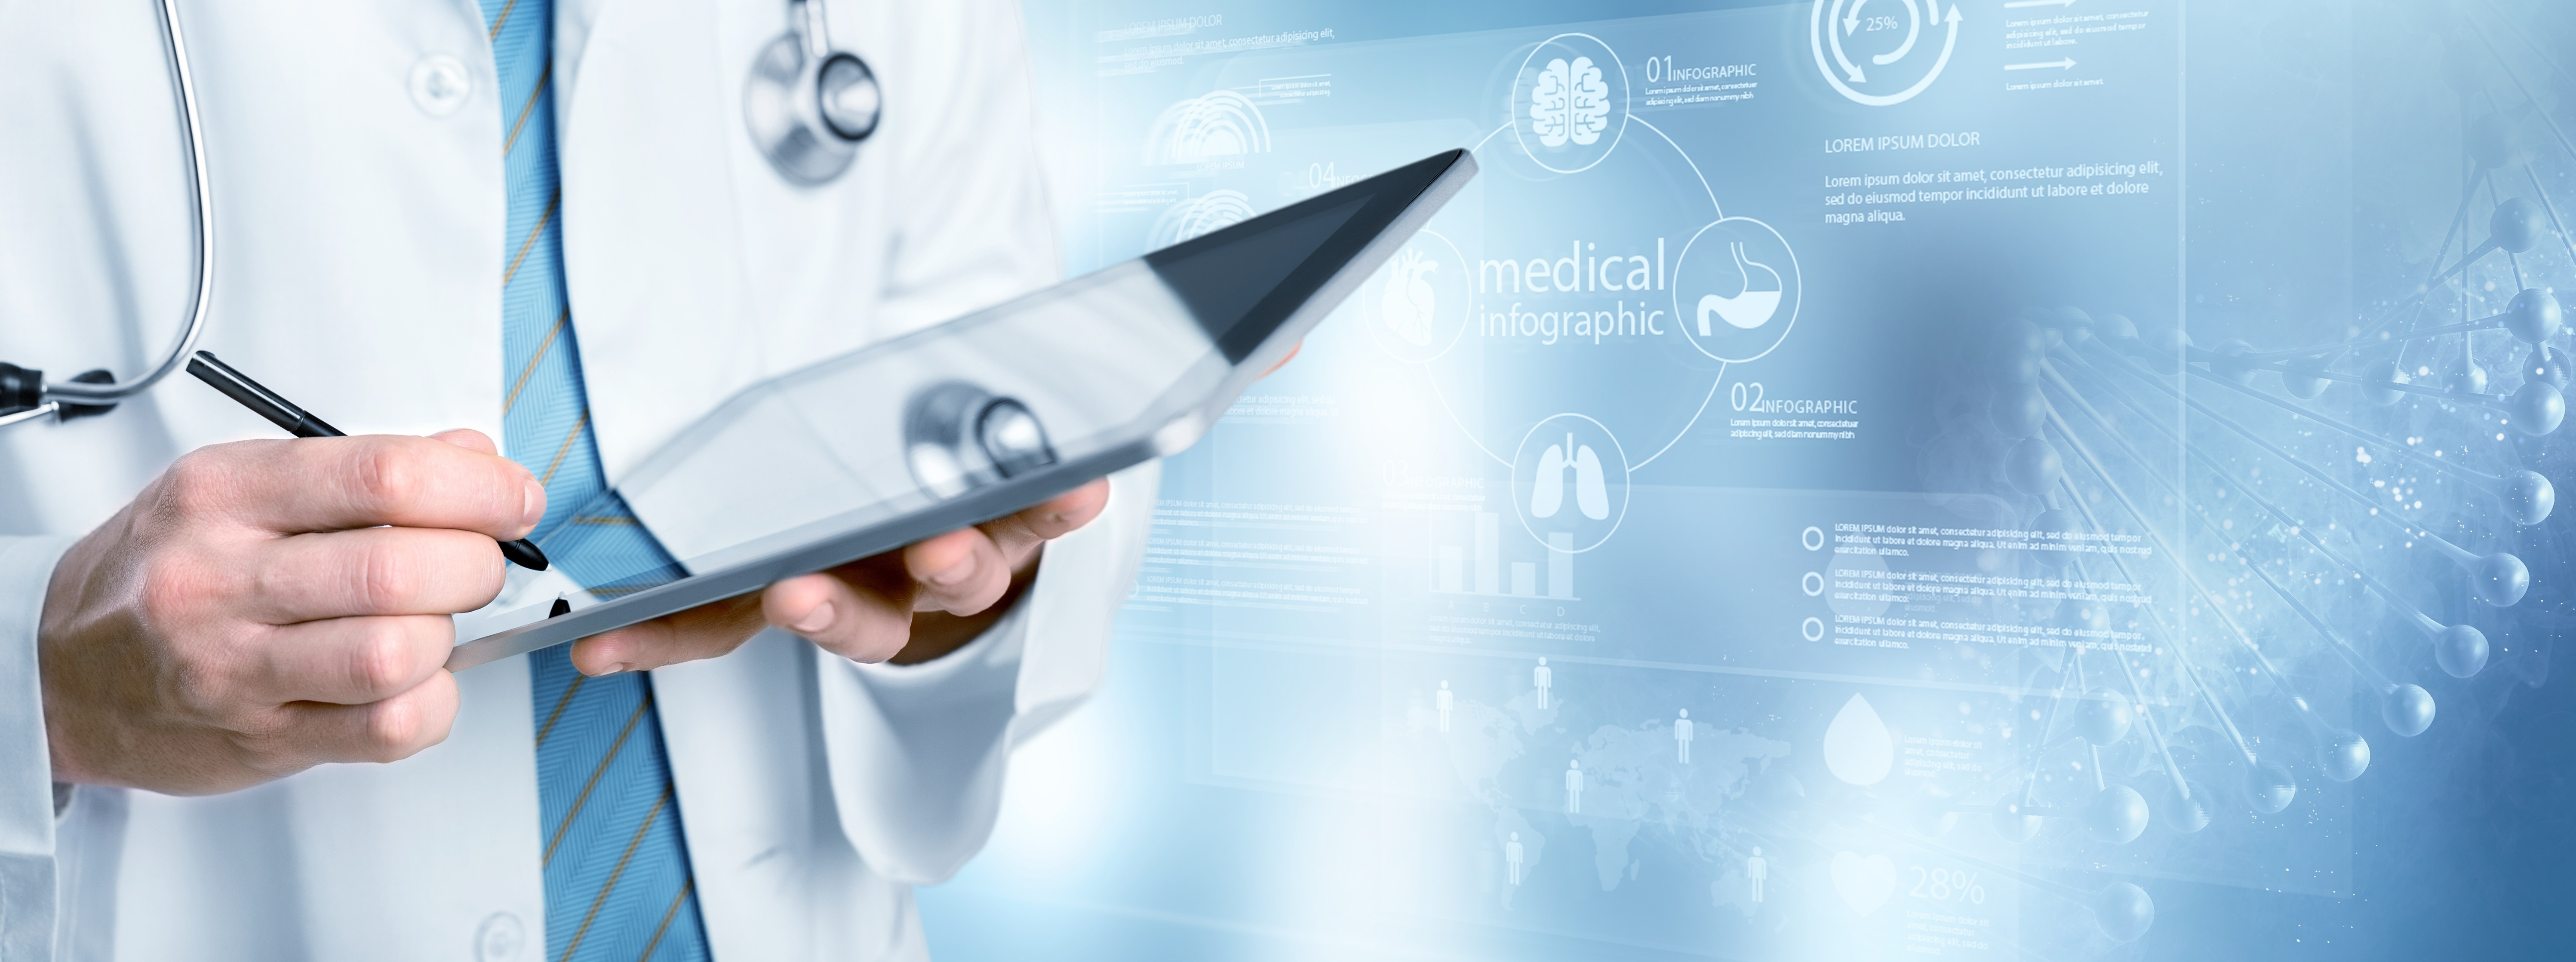 VIDEXA brings disparate healthcare data sets together into one consolidated environment.